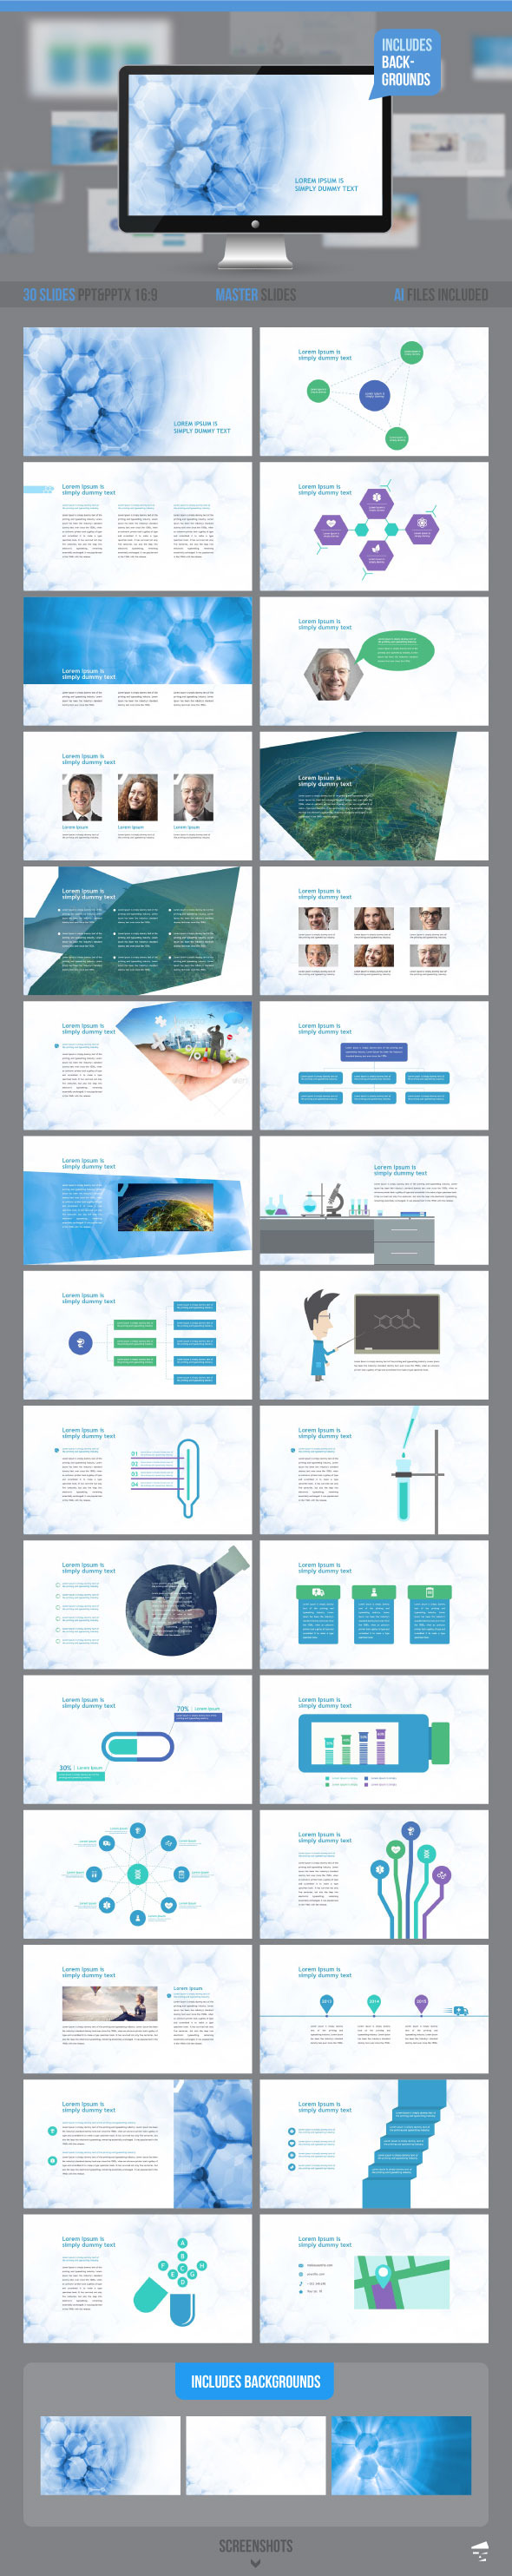 Medical Template For Powerpoint from previews.customer.envatousercontent.com